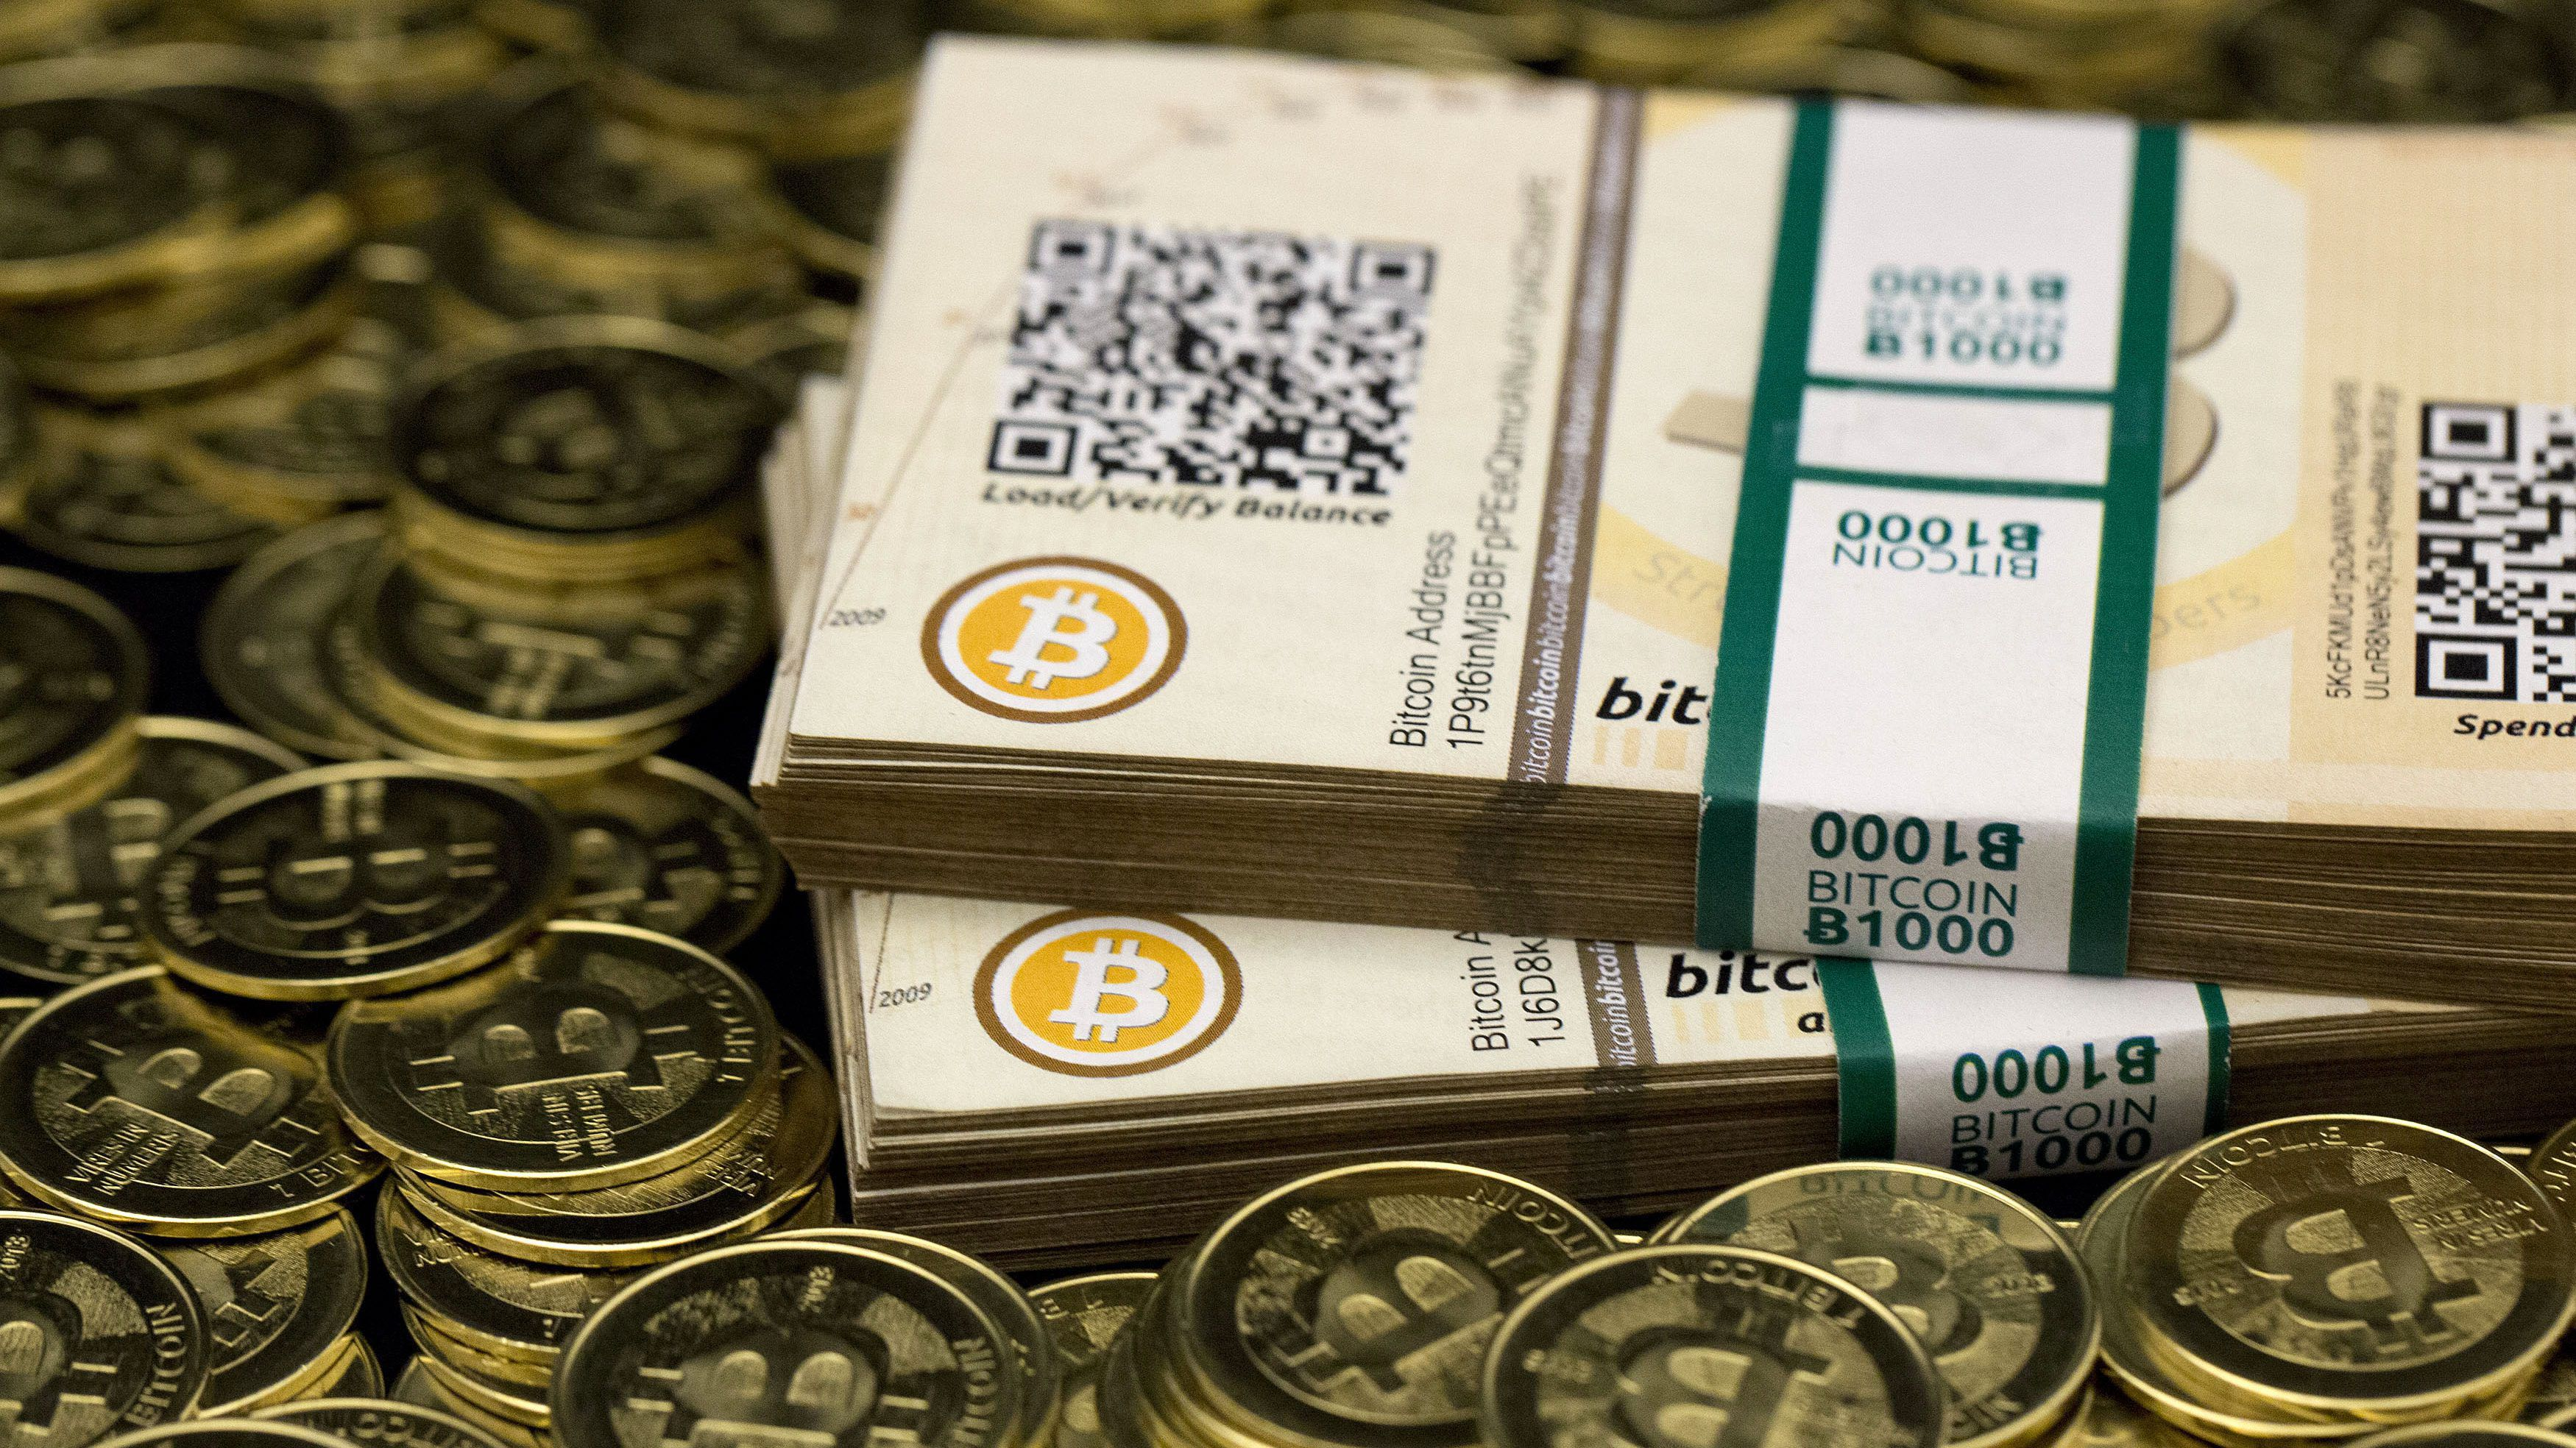 Bitcoin cash is already the third most valuable cryptocurrency quartz some of bitcoin enthusiast mike caldwells coins and paper vouchers often called paper wallets ccuart Gallery